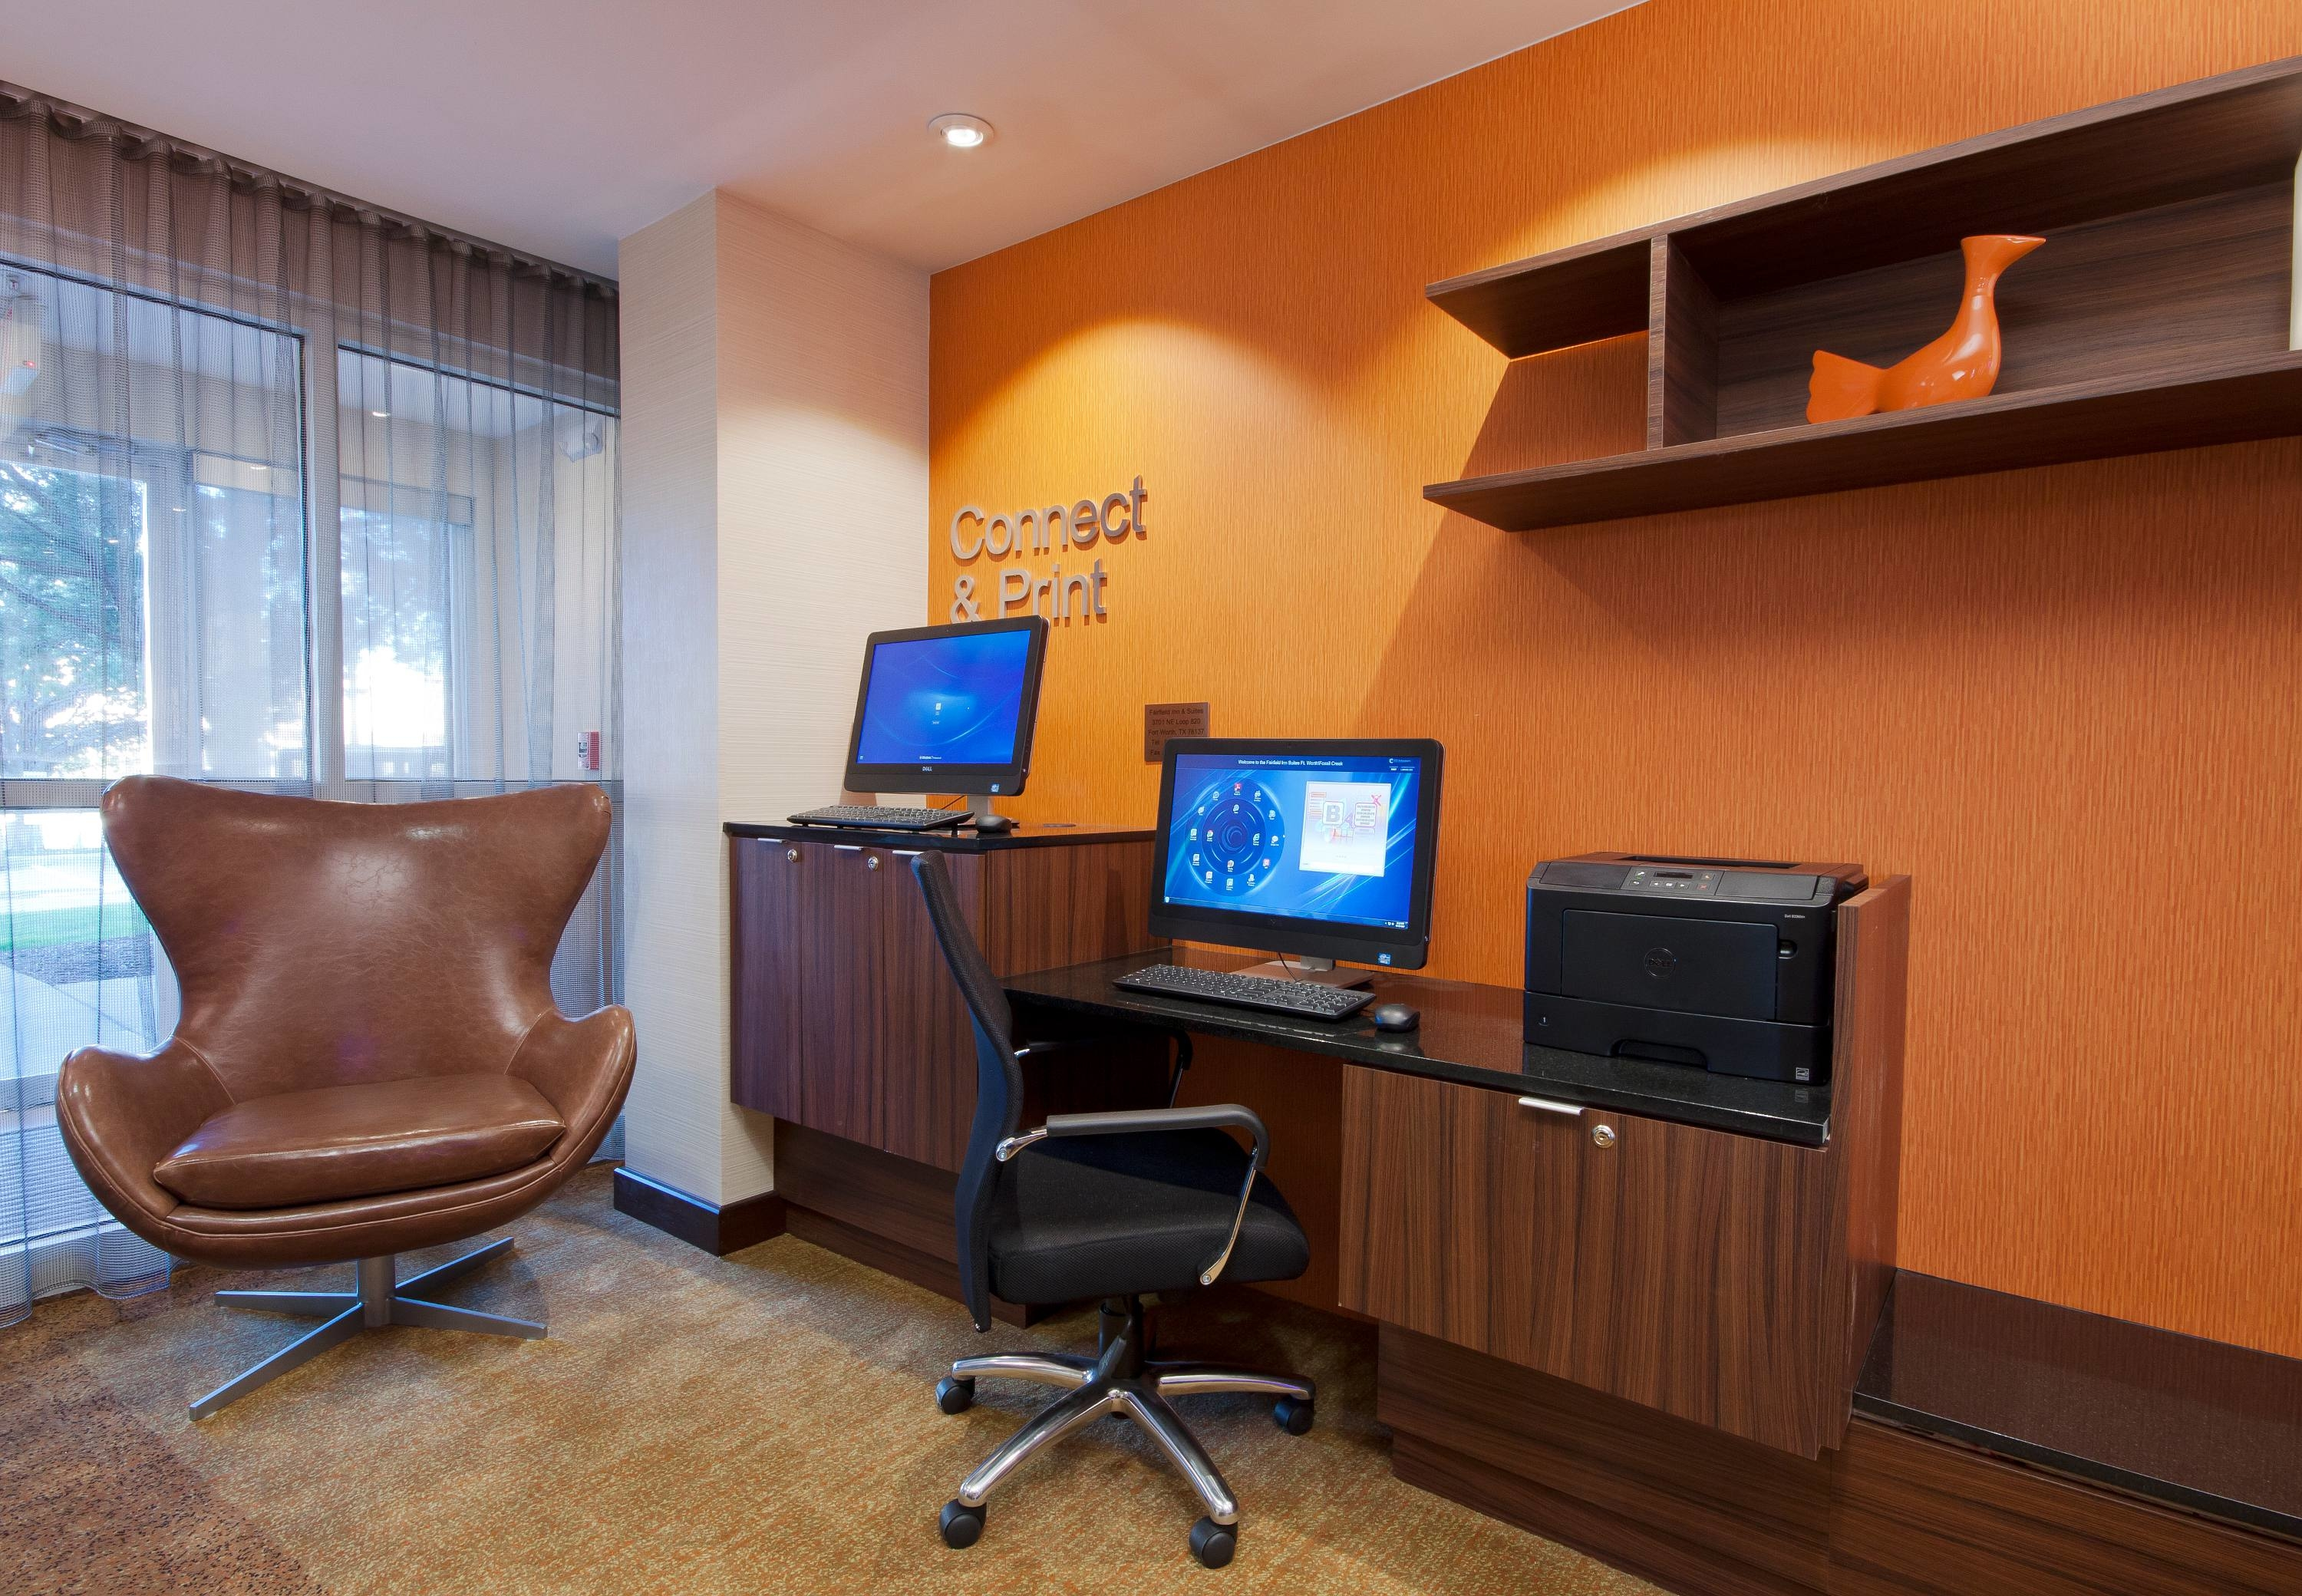 Fairfield Inn & Suites by Marriott Fort Worth/Fossil Creek image 16